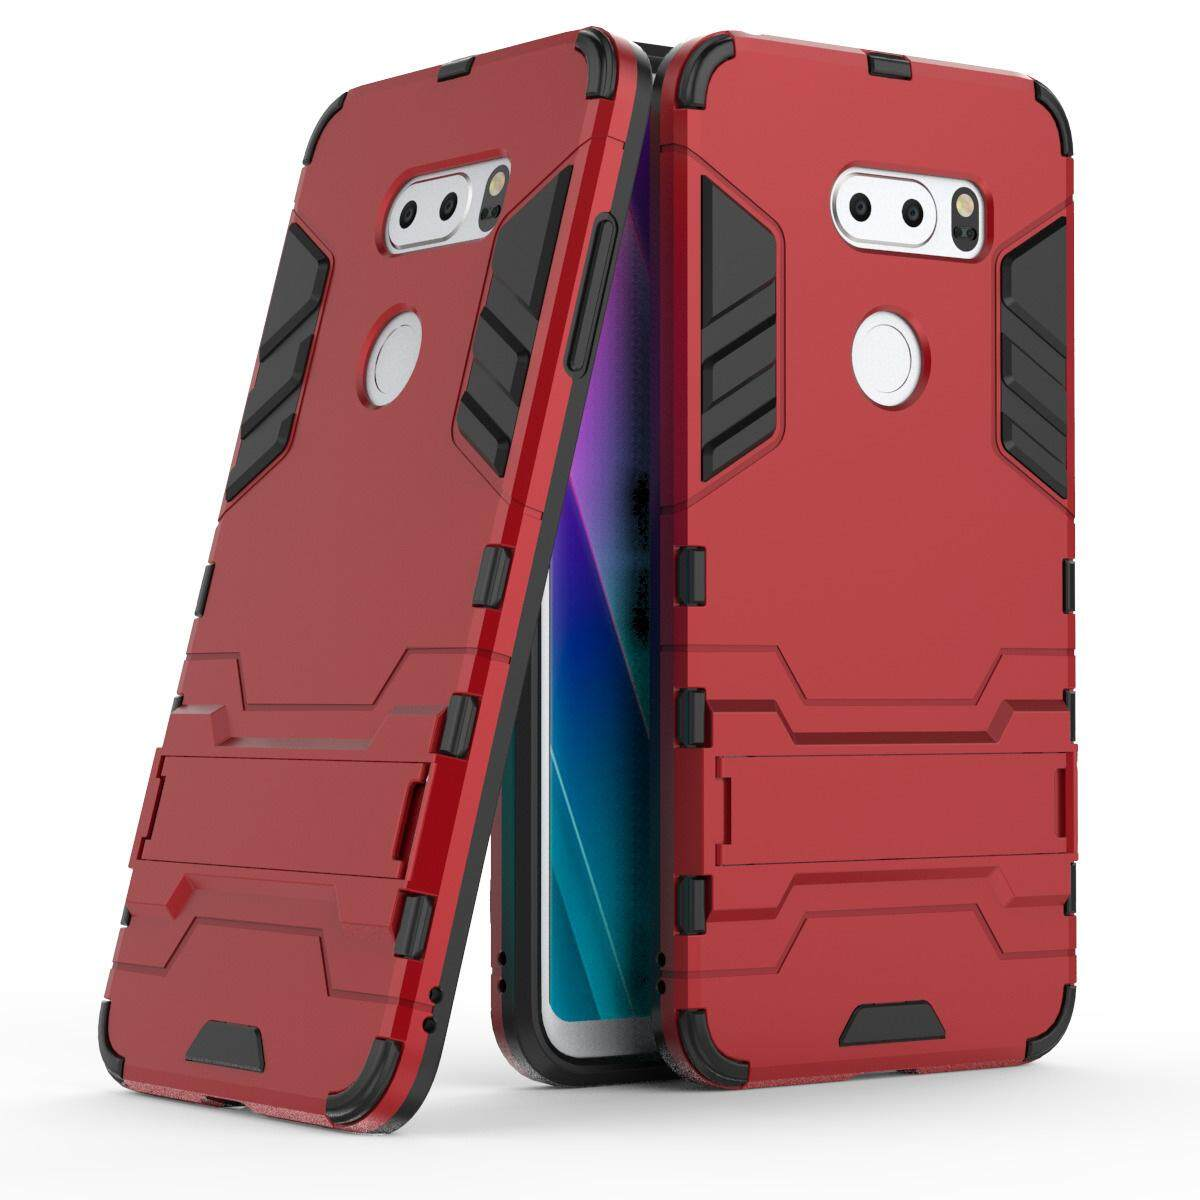 Hình ảnh for LG V30 Case 2in1 PC+TPU Hybrid Slim Back Case Ultra Thin Armor Cover, with Kickstand Holder, Glossy, Minimalist, Casual